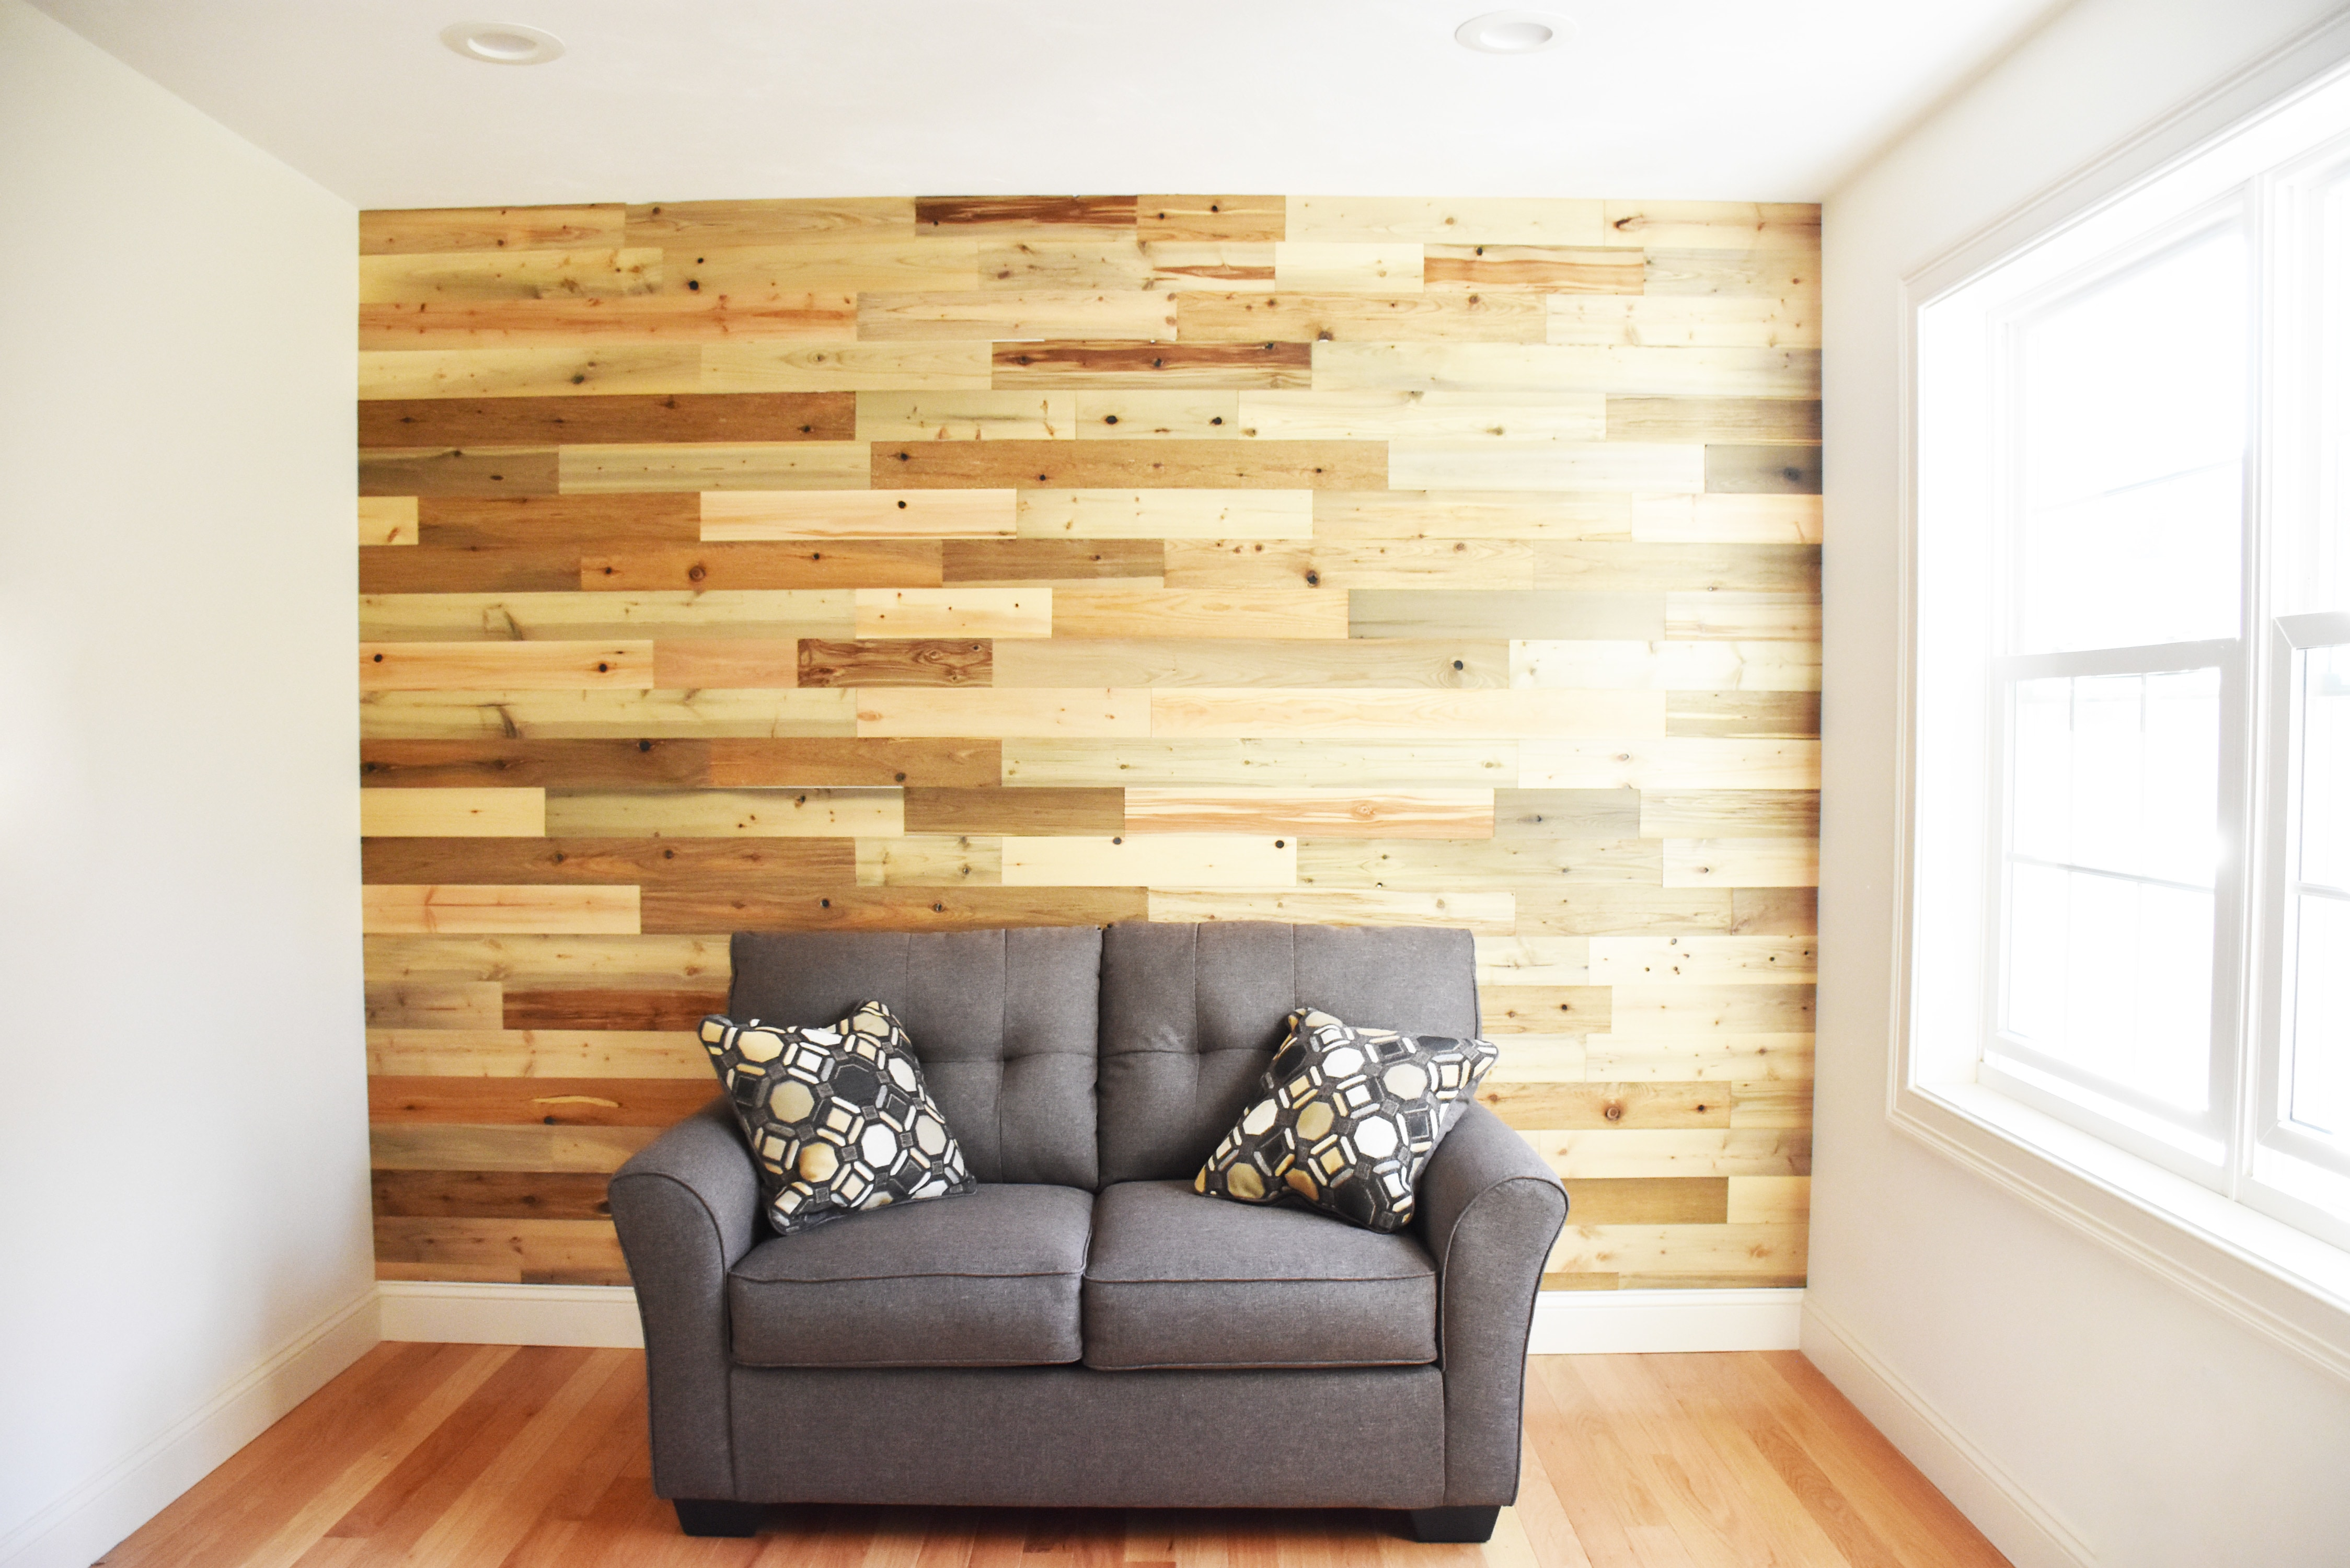 Timberchic River Plank Peel and Stick Reclaimed Wooden Panels River ...